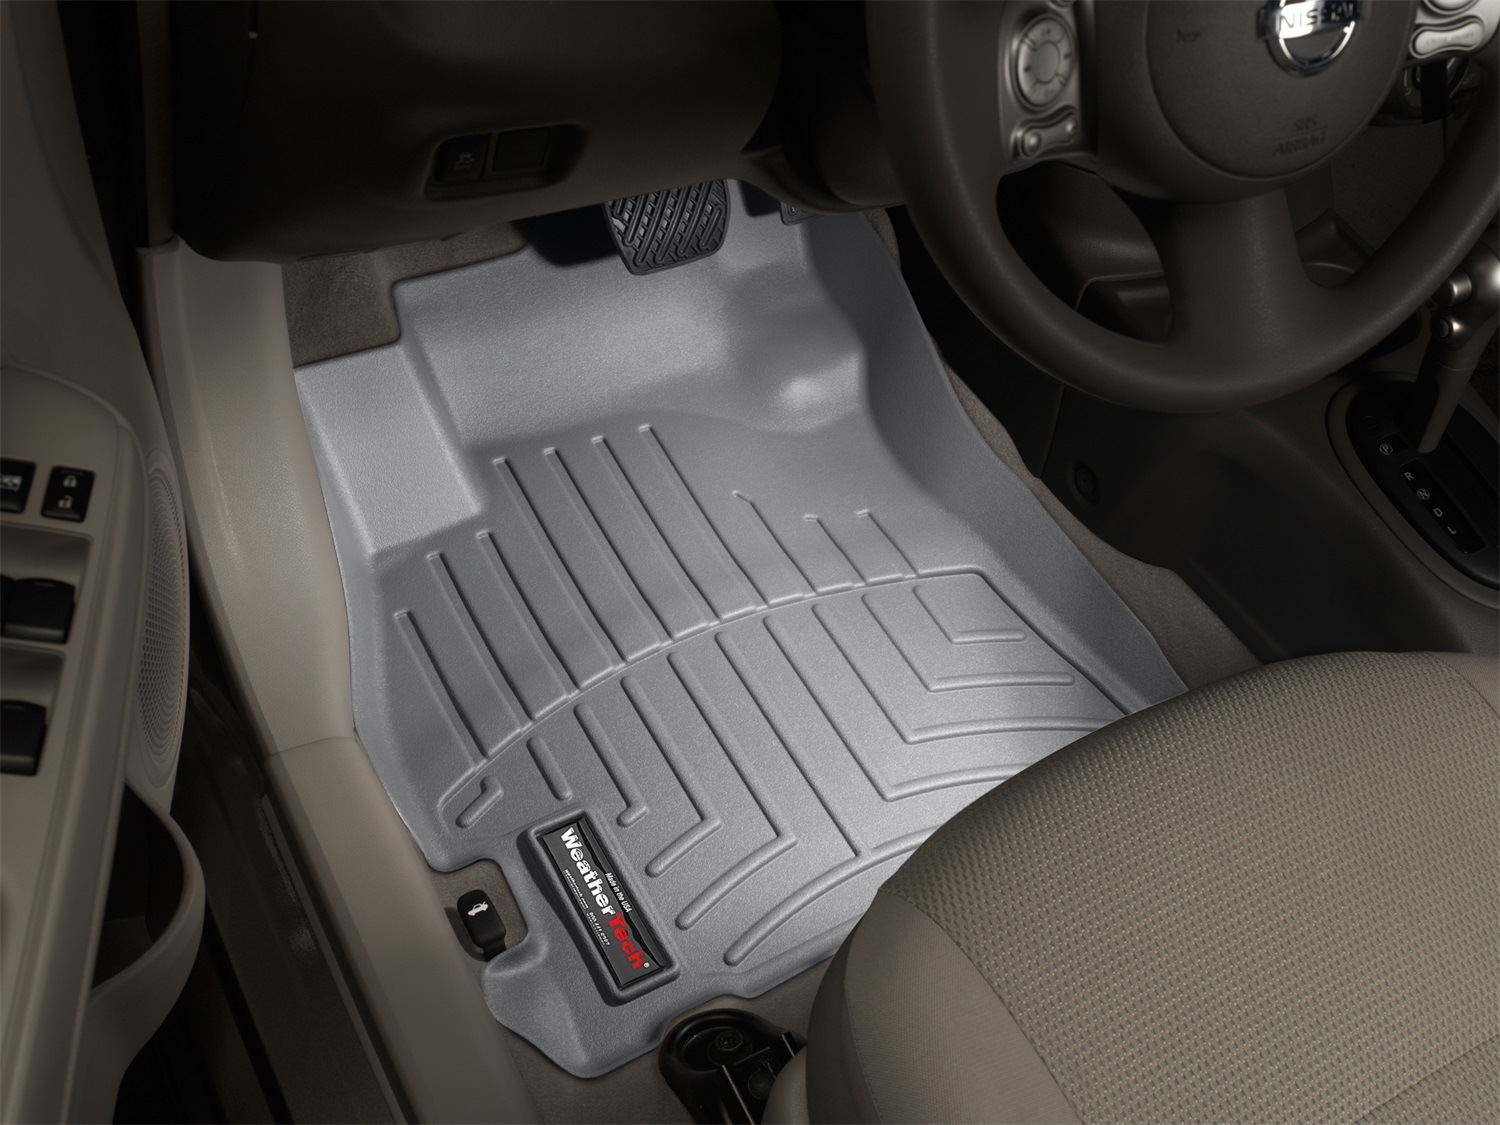 automotive mats amazon avm weathertech rear com fit car to and trim dp mat universal grey front